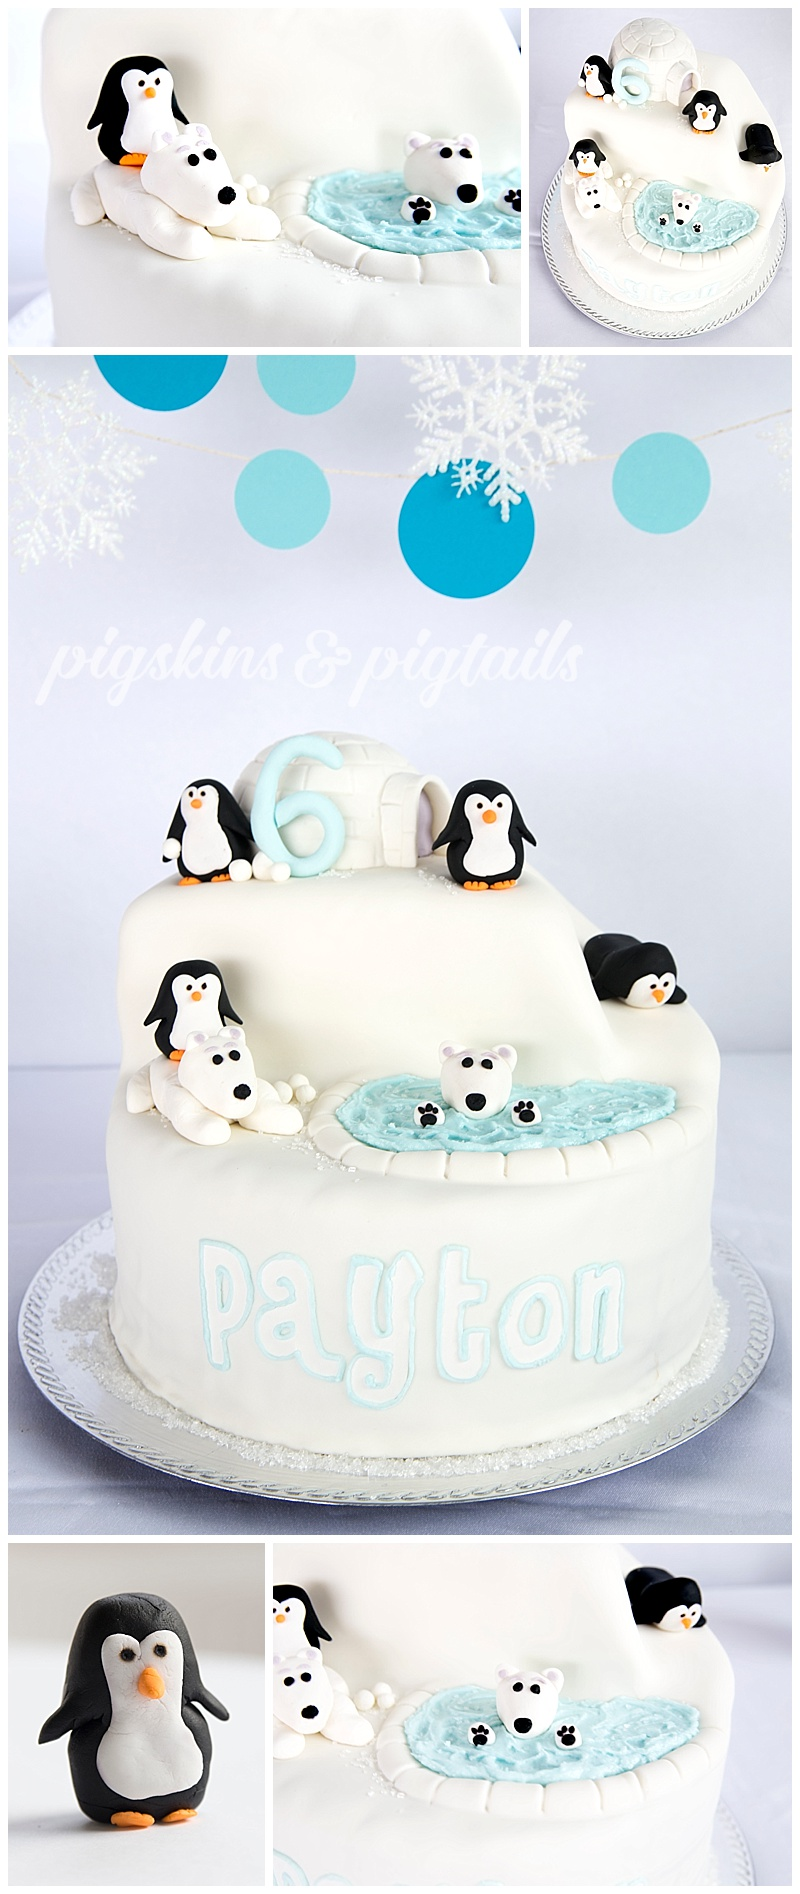 Penguin Polar Bear Party Cake